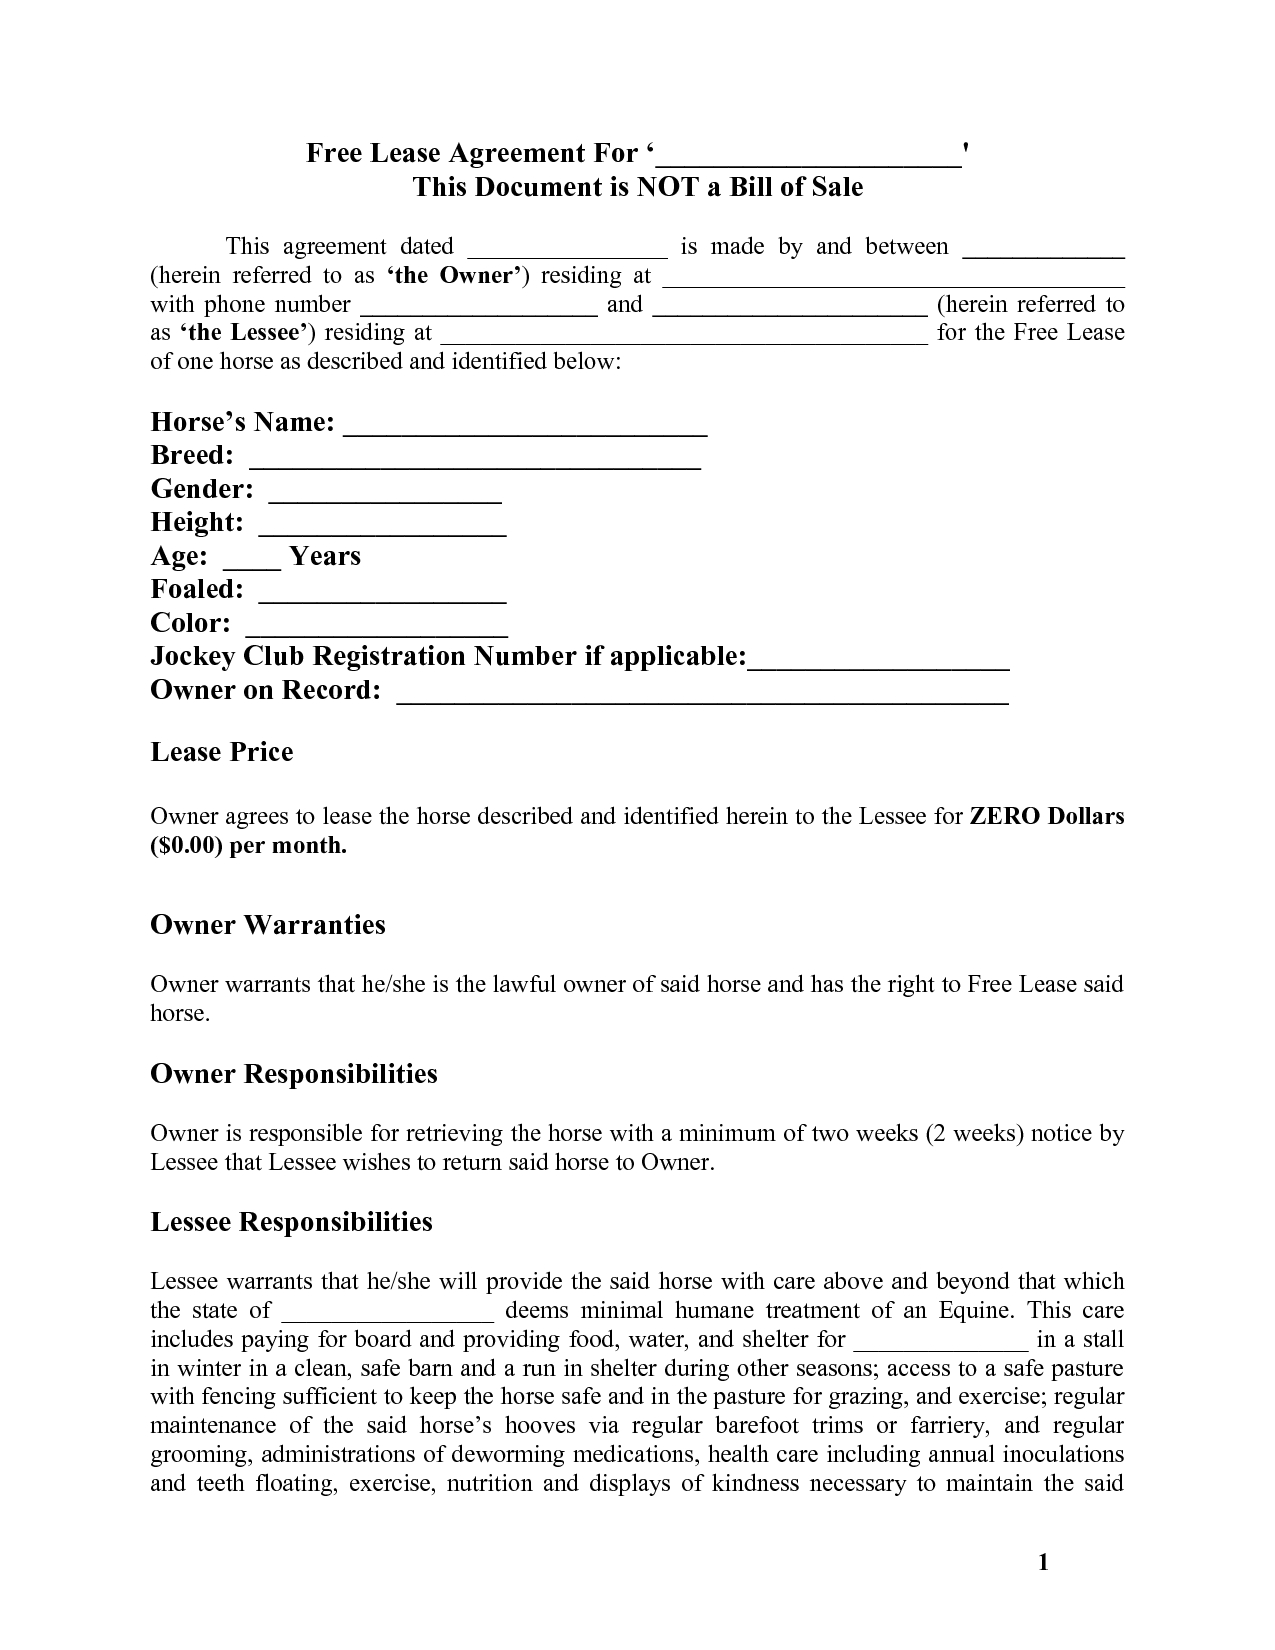 Contract For Rent To Own Home Forms - Free Printable Documents - Free Printable Documents